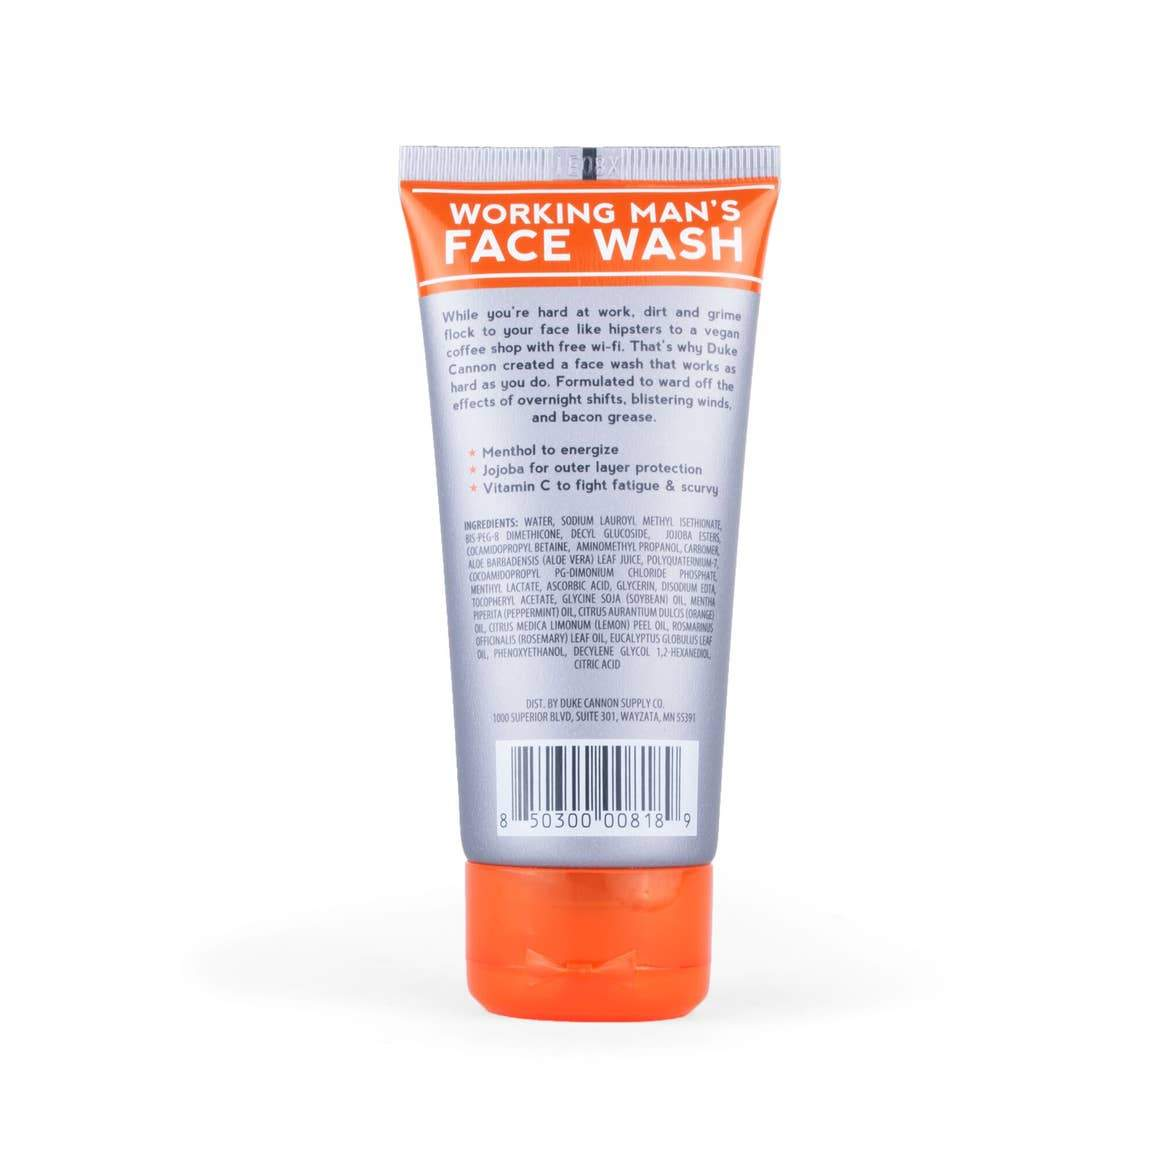 Working Man's Face Wash - Travel Size - Giften Market